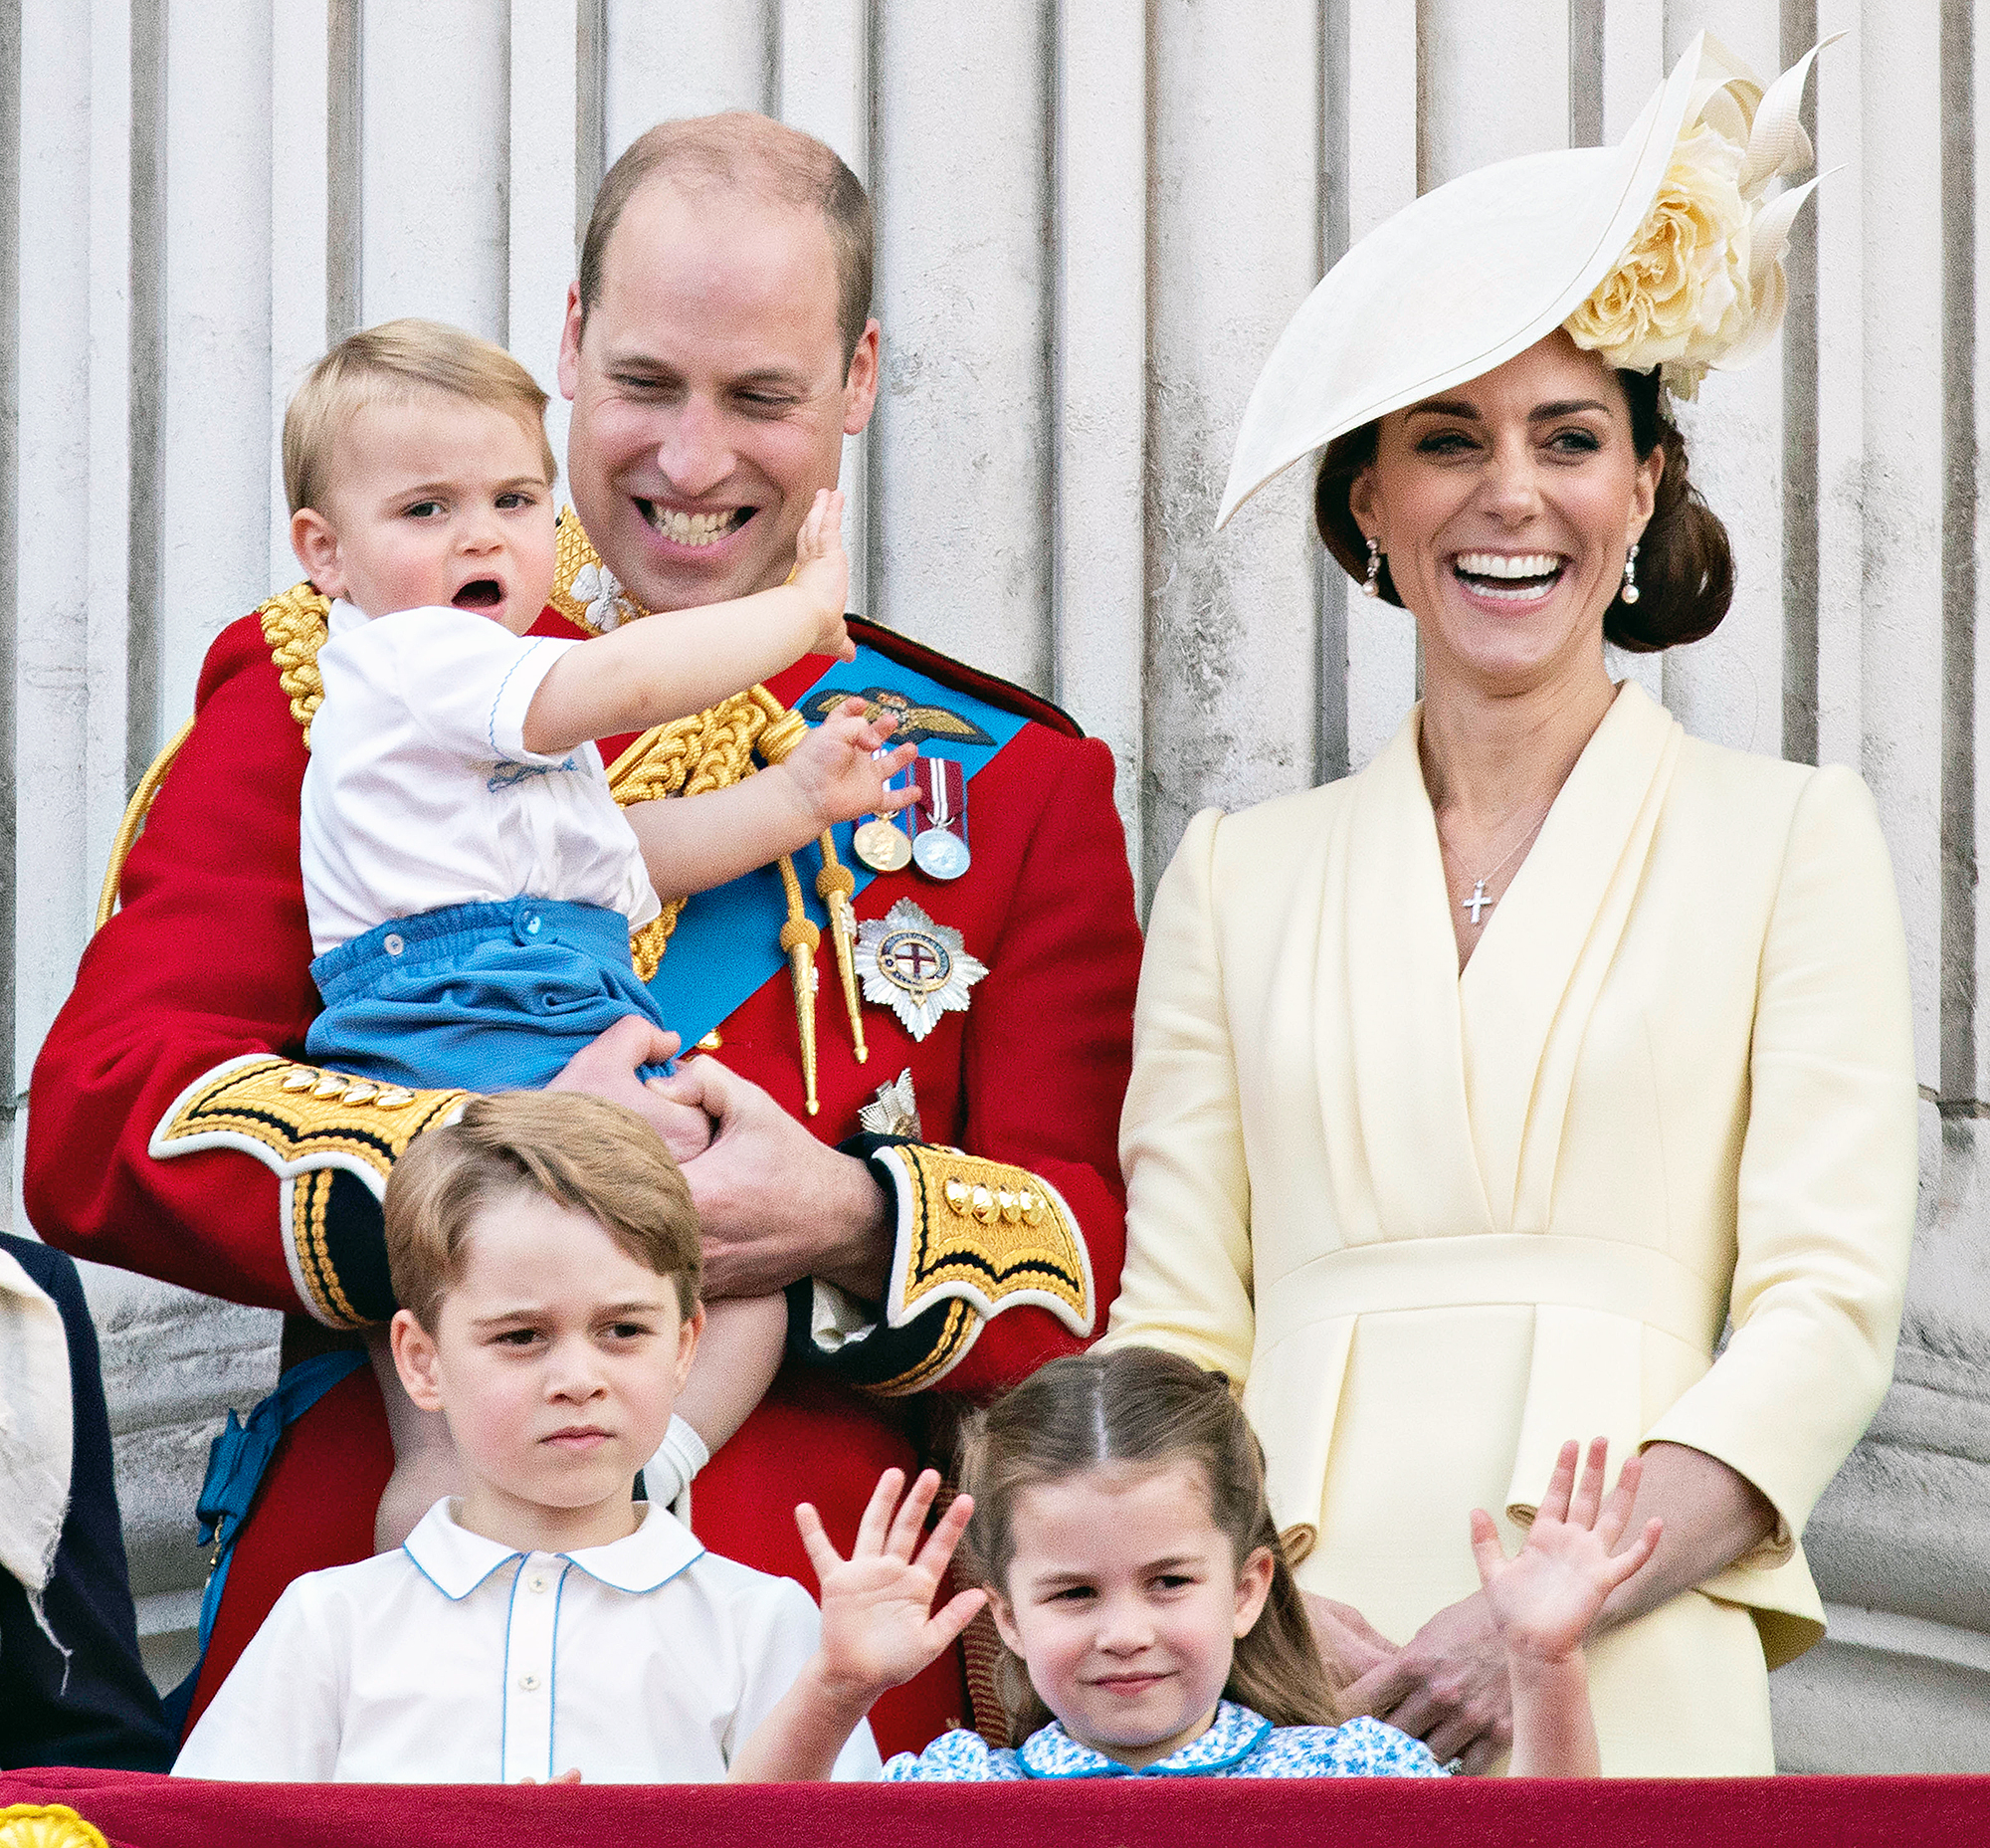 Duchess Kate Admits Her Family Has Had a Really Difficult Time Adjusting to Life in Quarantine